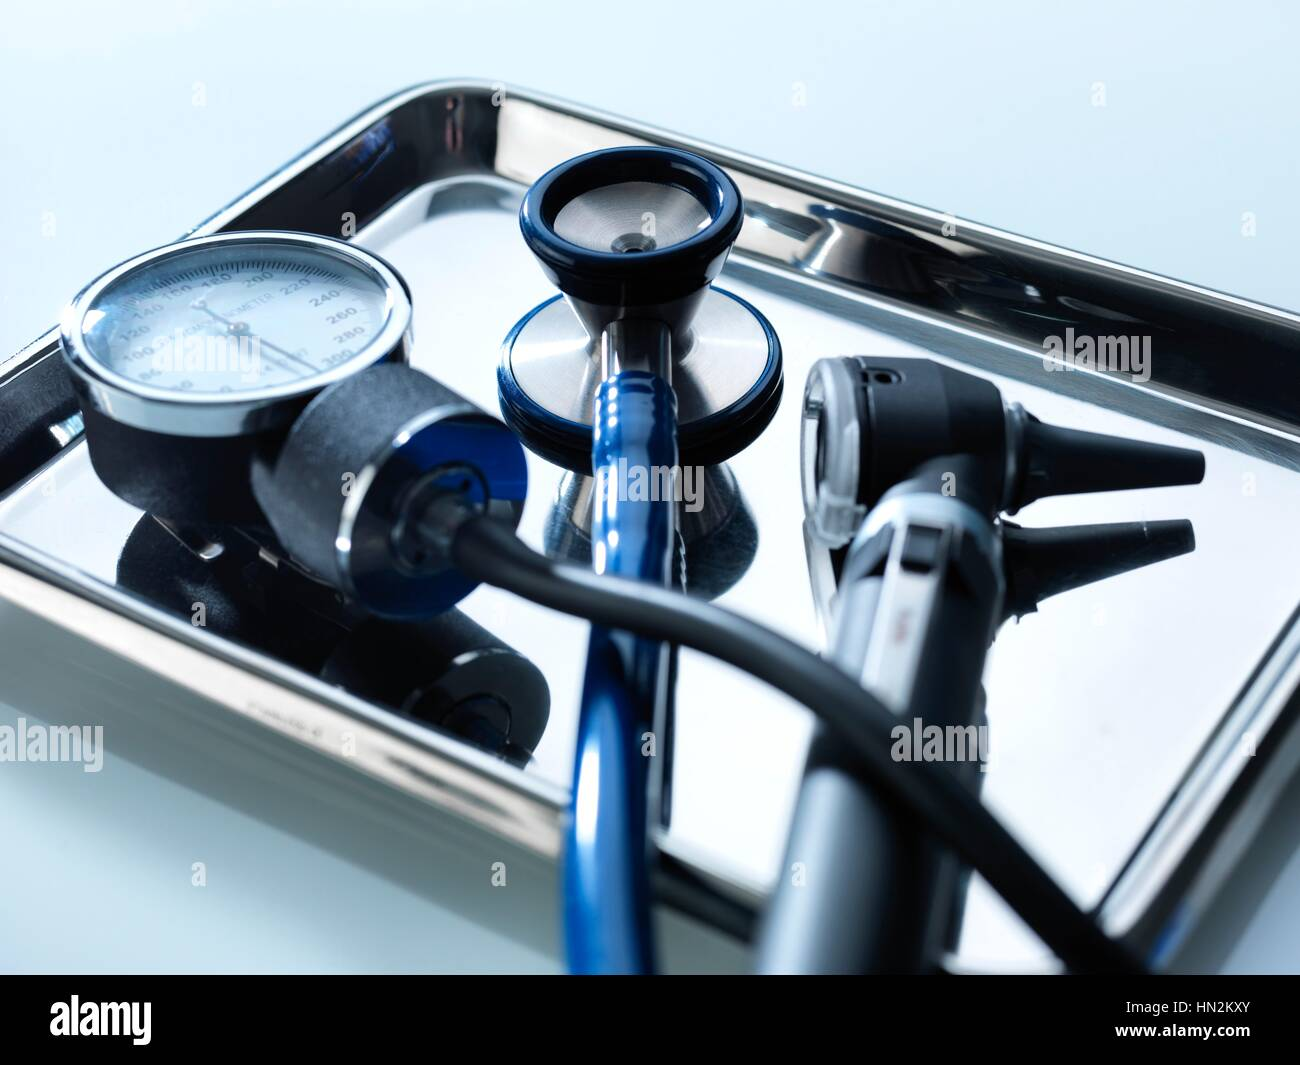 Close-up of a sphygmomanometer, stethoscope and otoscope on a metal tray. - Stock Image